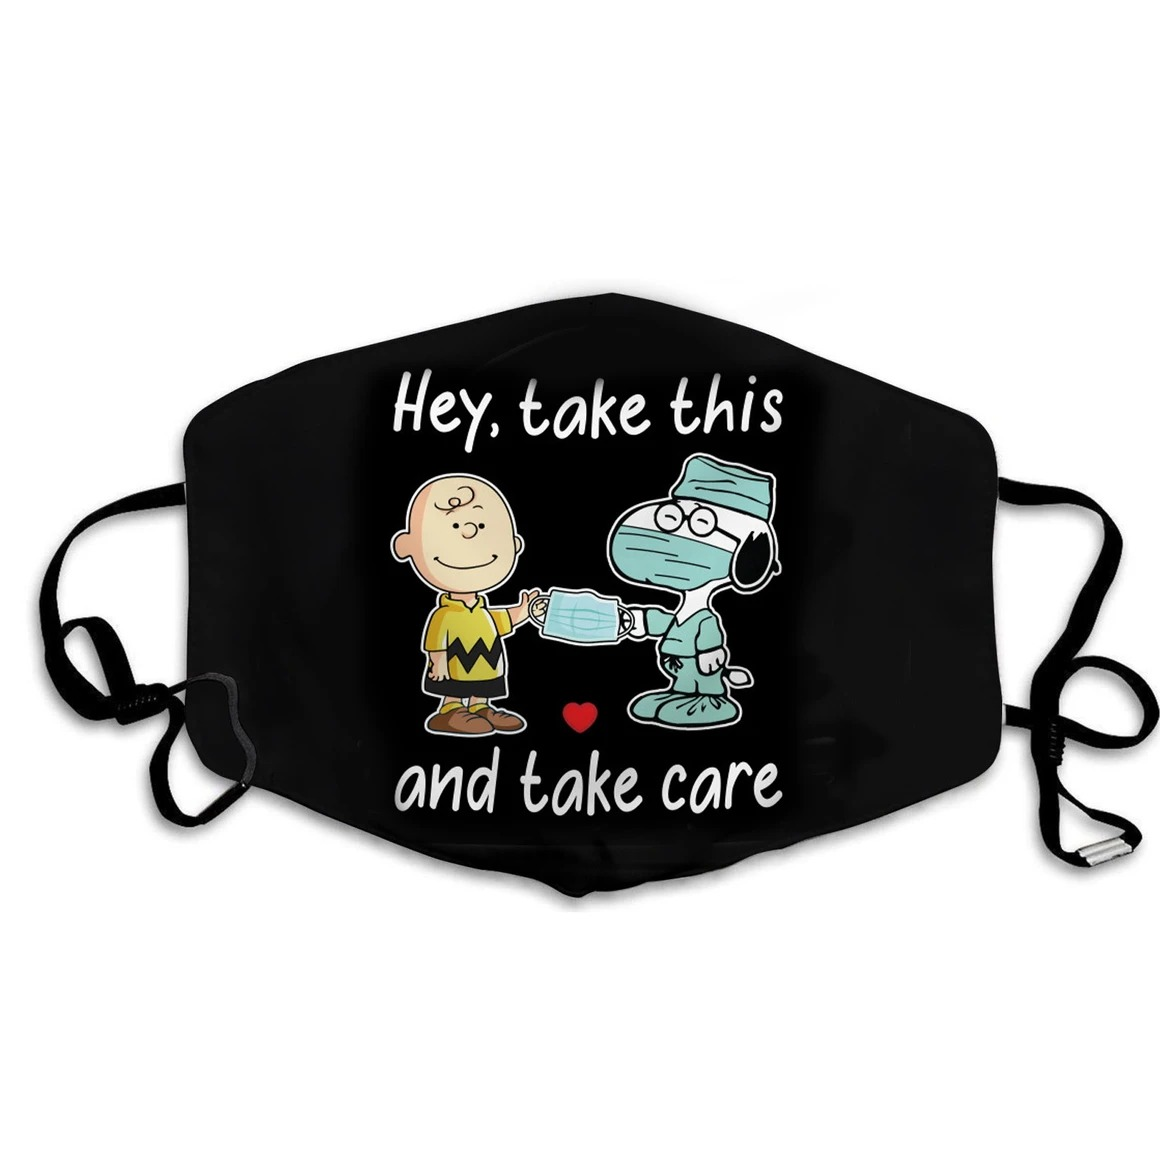 Snoopy and Charlie Brown Hey Take this and take care face mask 0